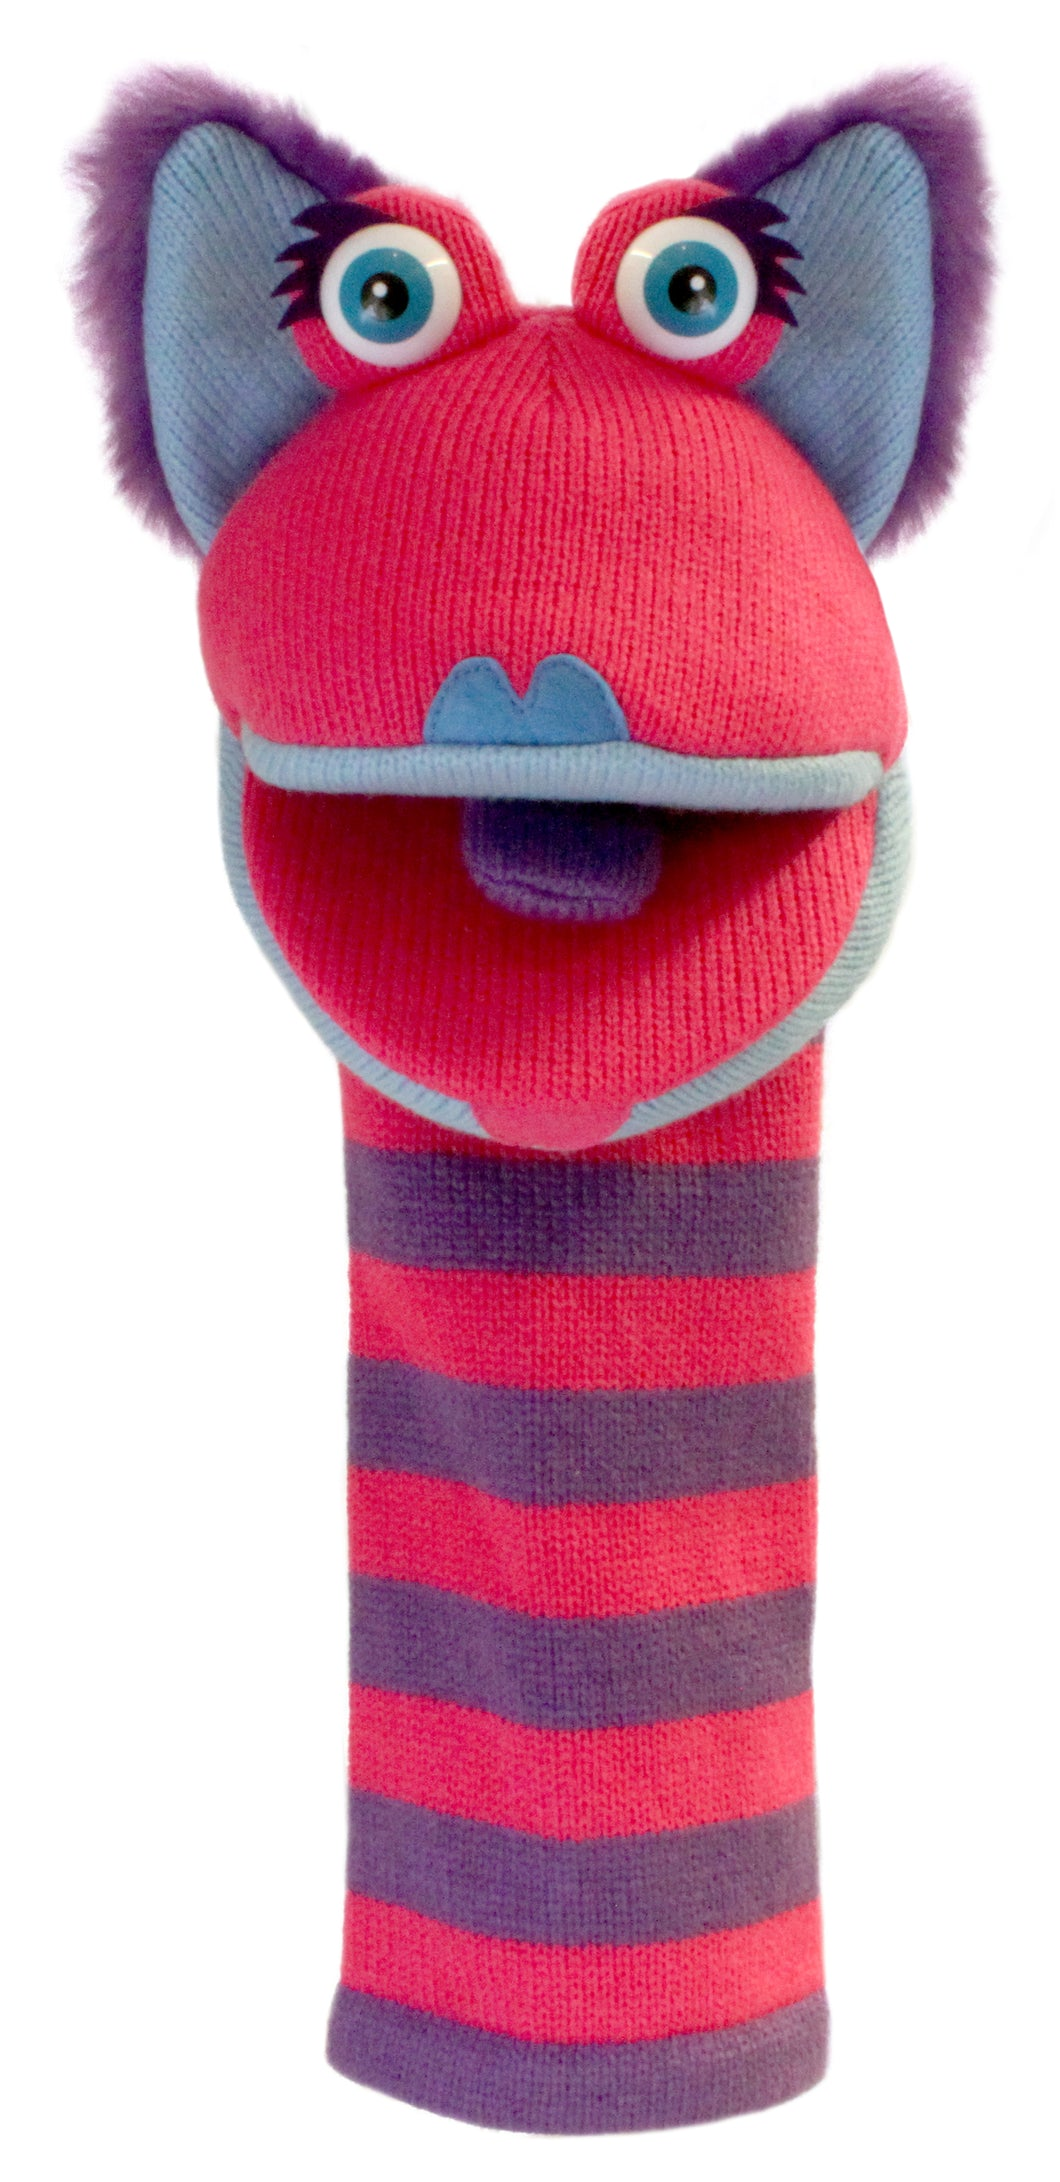 P474-PC007010-marionnette-Kitty-Chaussette-The-Puppet-Company-Sockettes